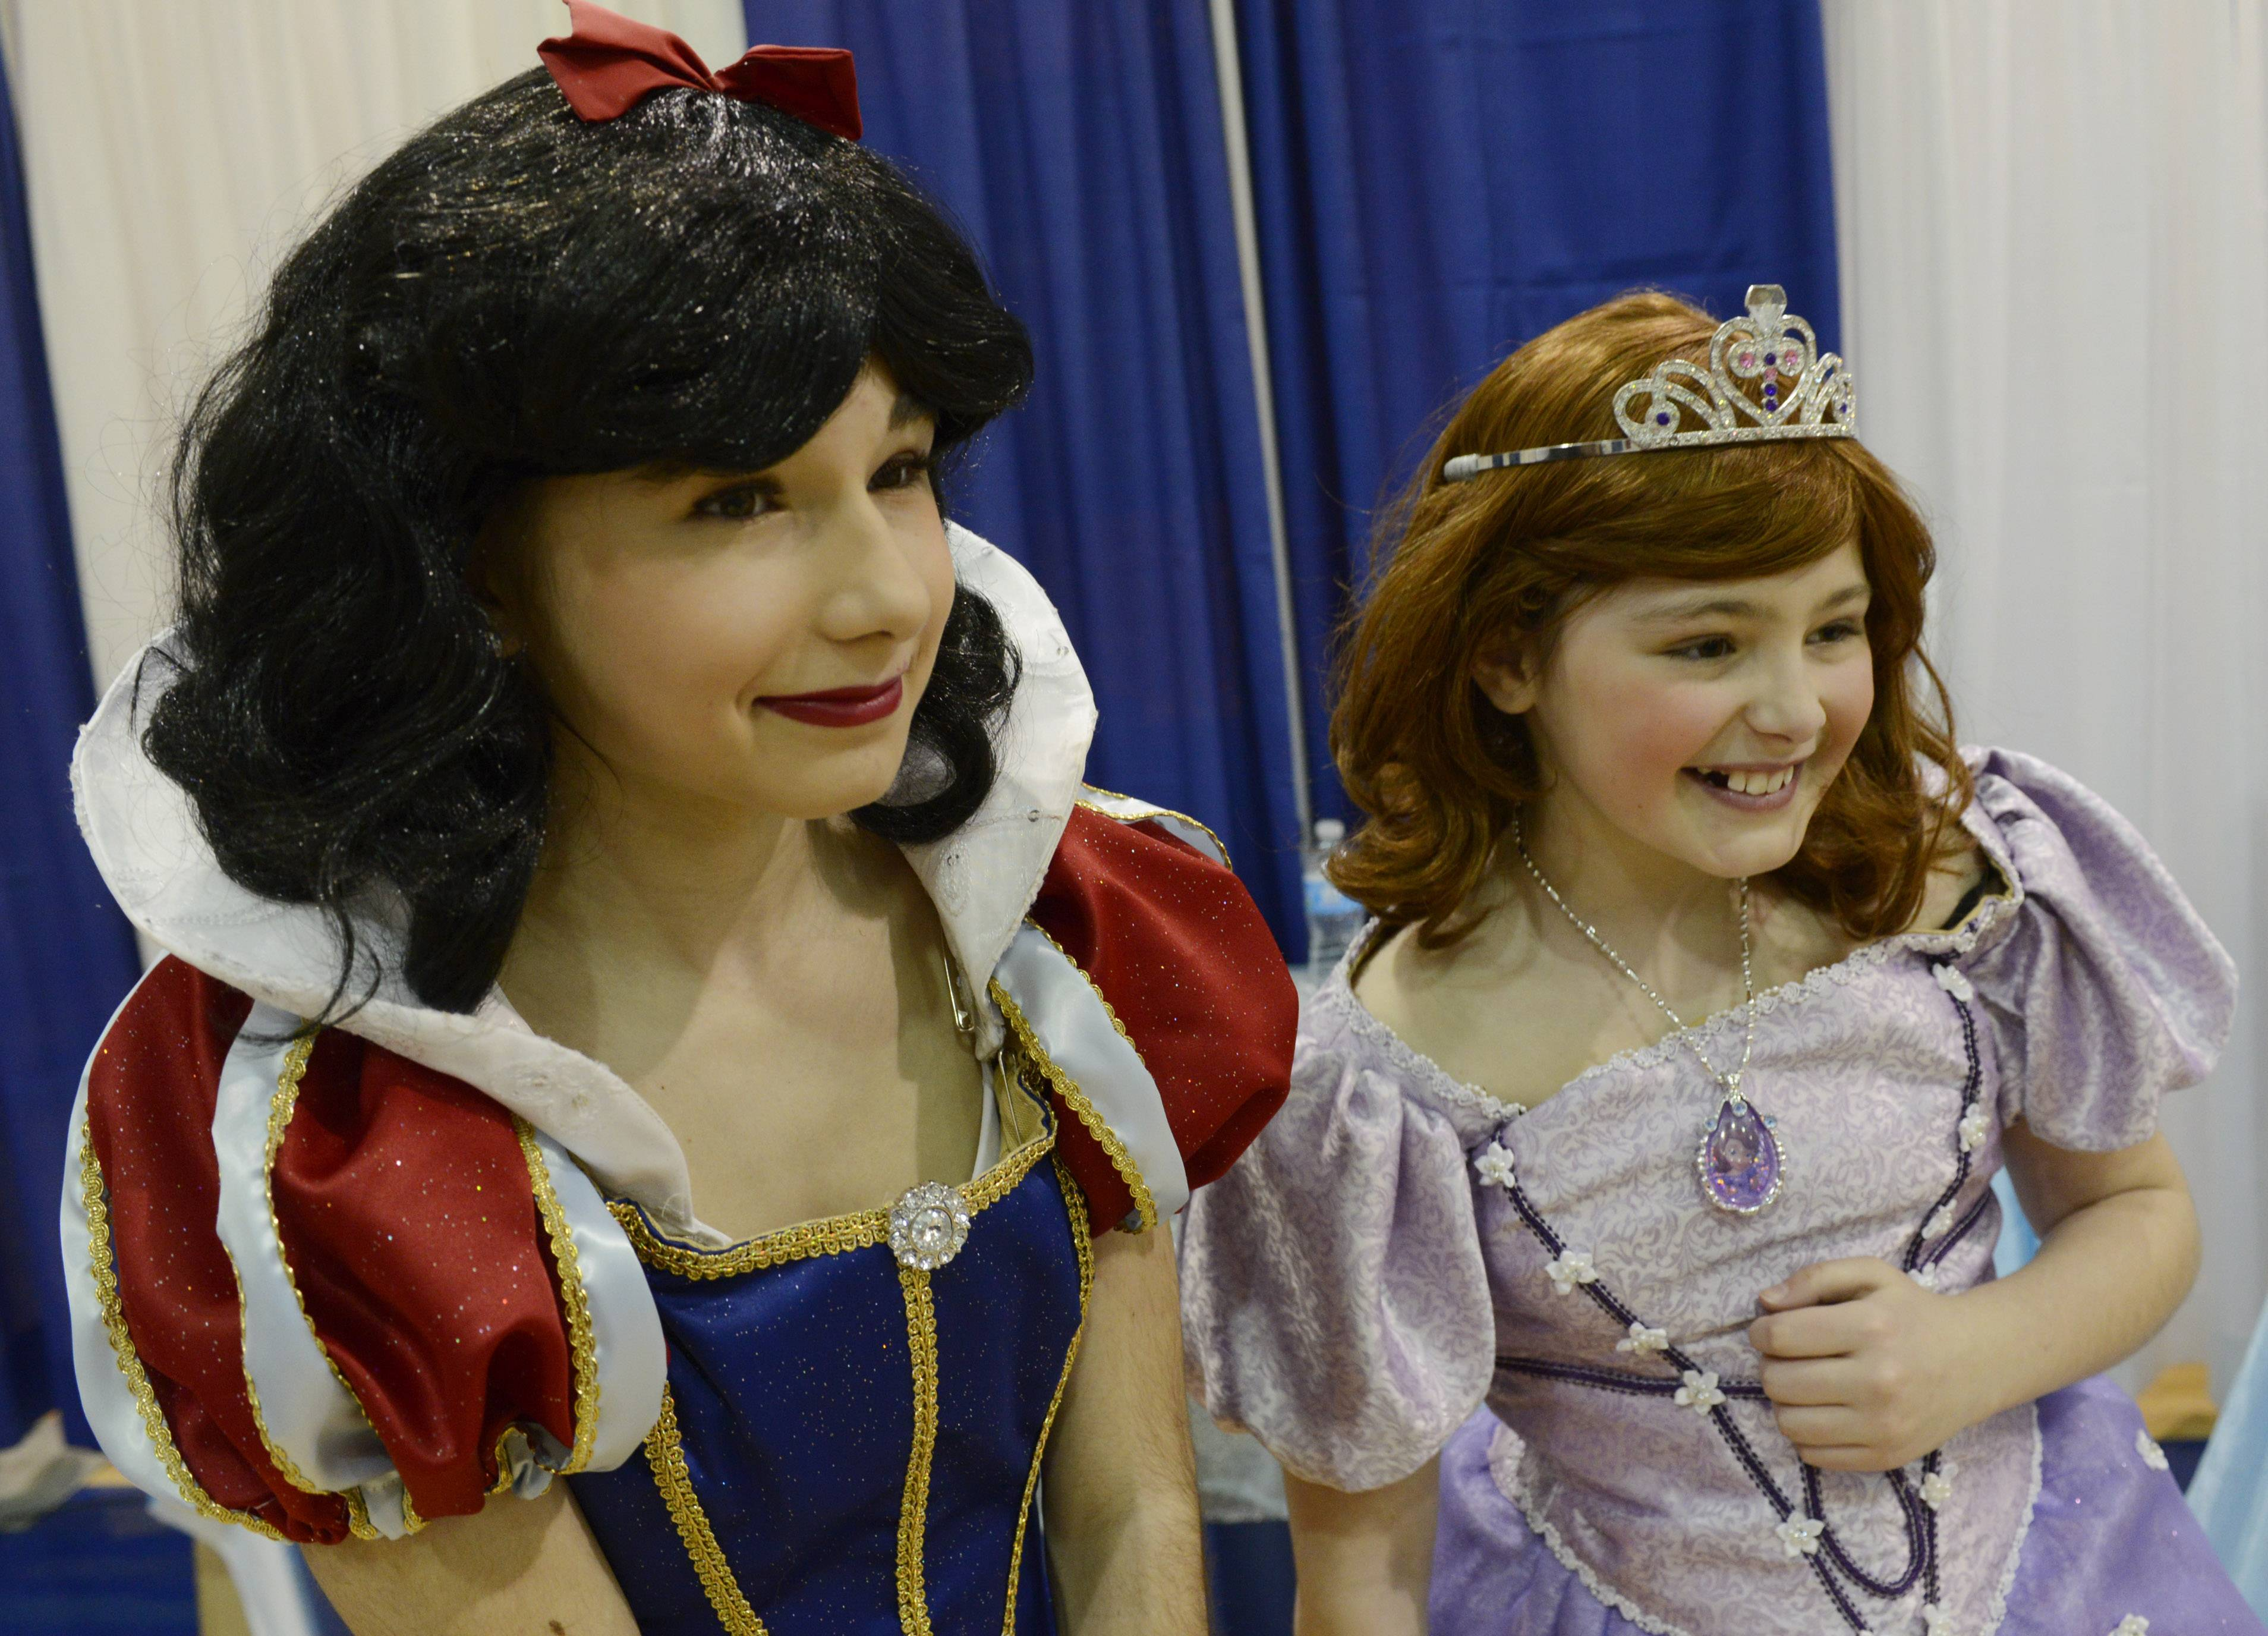 Lyndsey Bassett, 14, left, of Hainesville, is dressed as Snow White and her sister Lily, 10, is dressed as Princess Sofia, as they great visitors to the Round Lake Area Park District booth during the Springfest Expo 2014, held by the Lindenhurst-Lake Villa Chamber of Commerce at Lakes Community High School Saturday.